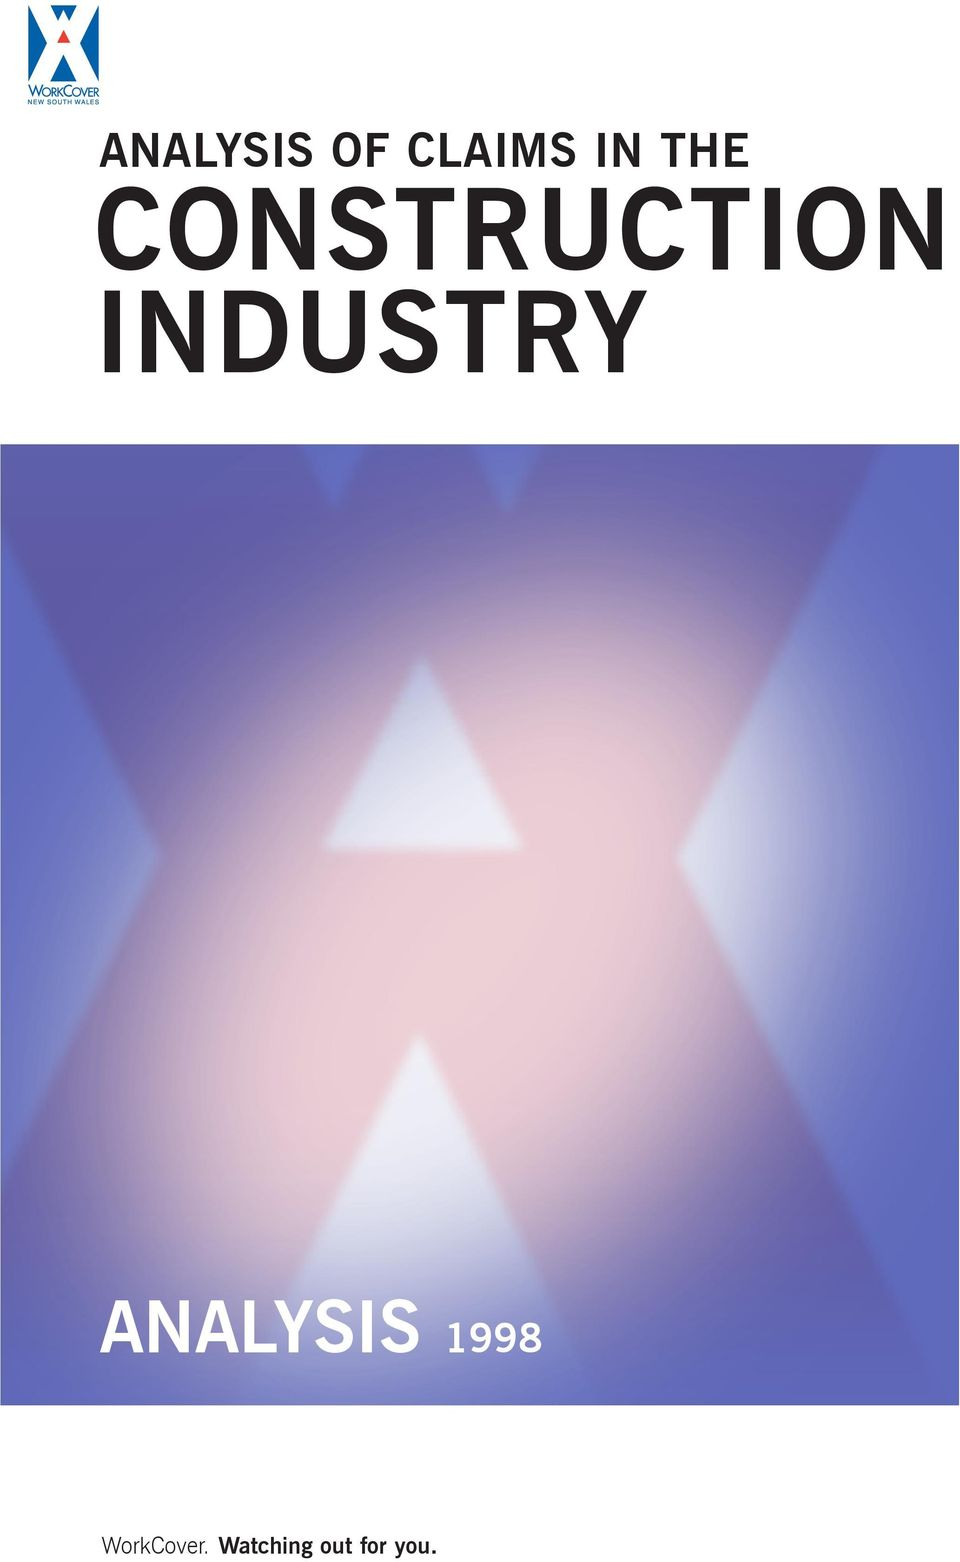 INDUSTRY ANALYSIS 1998